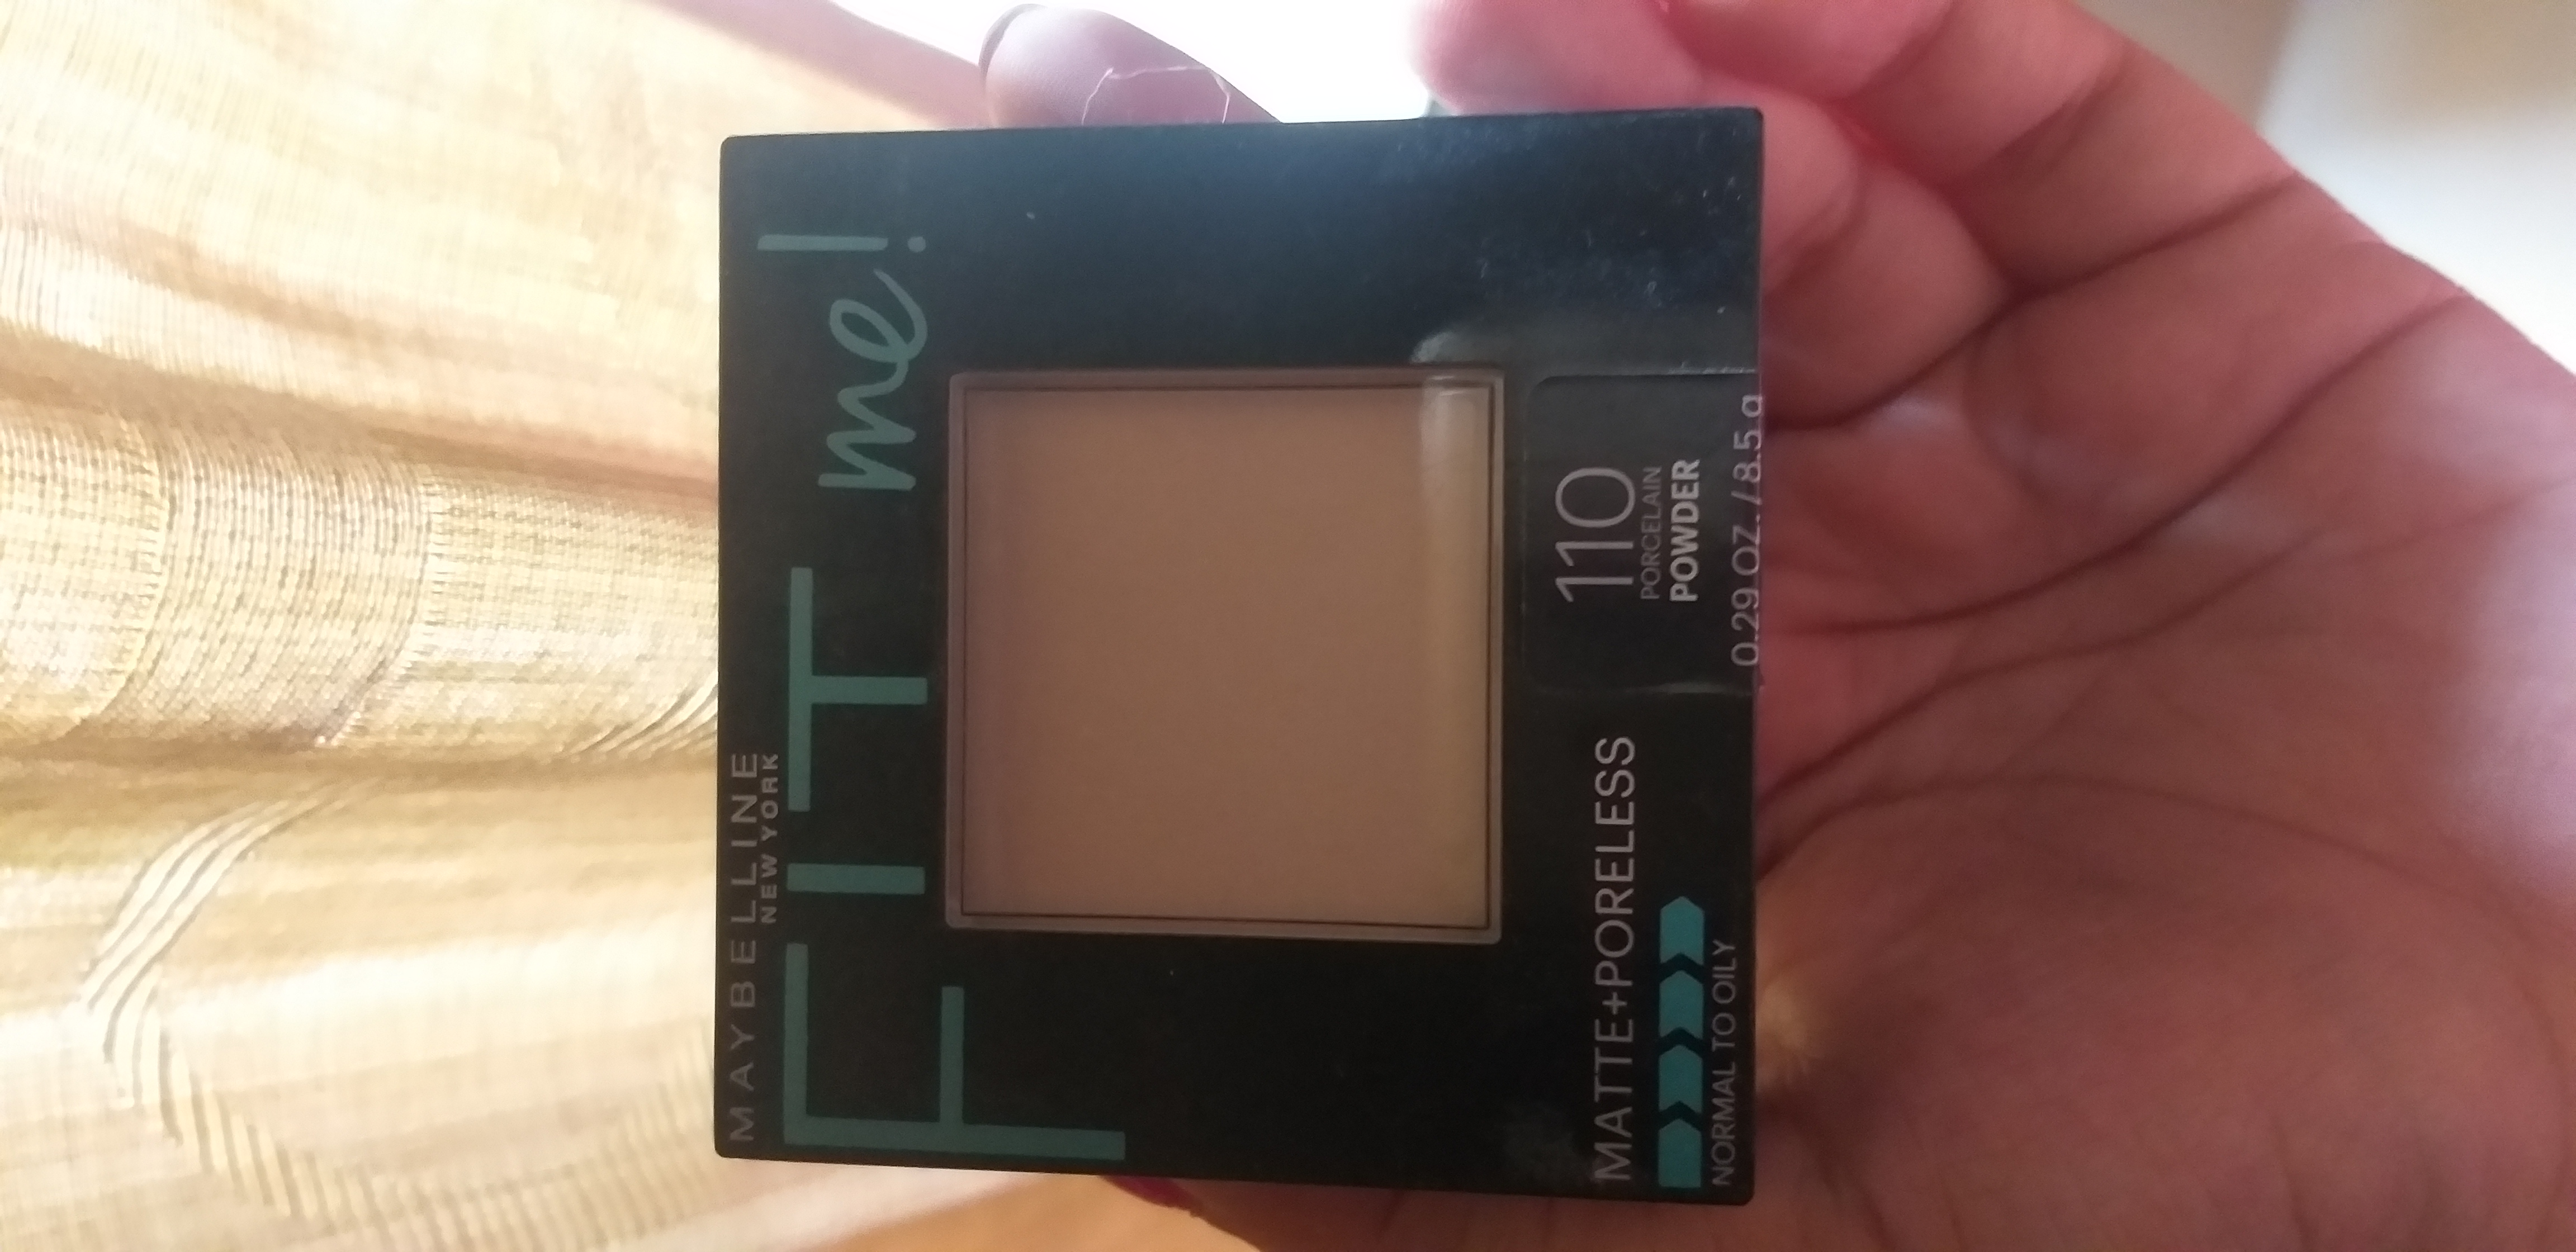 Maybelline Fit Me Matte And Poreless Powder-Super compact!-By thatkohlgirl